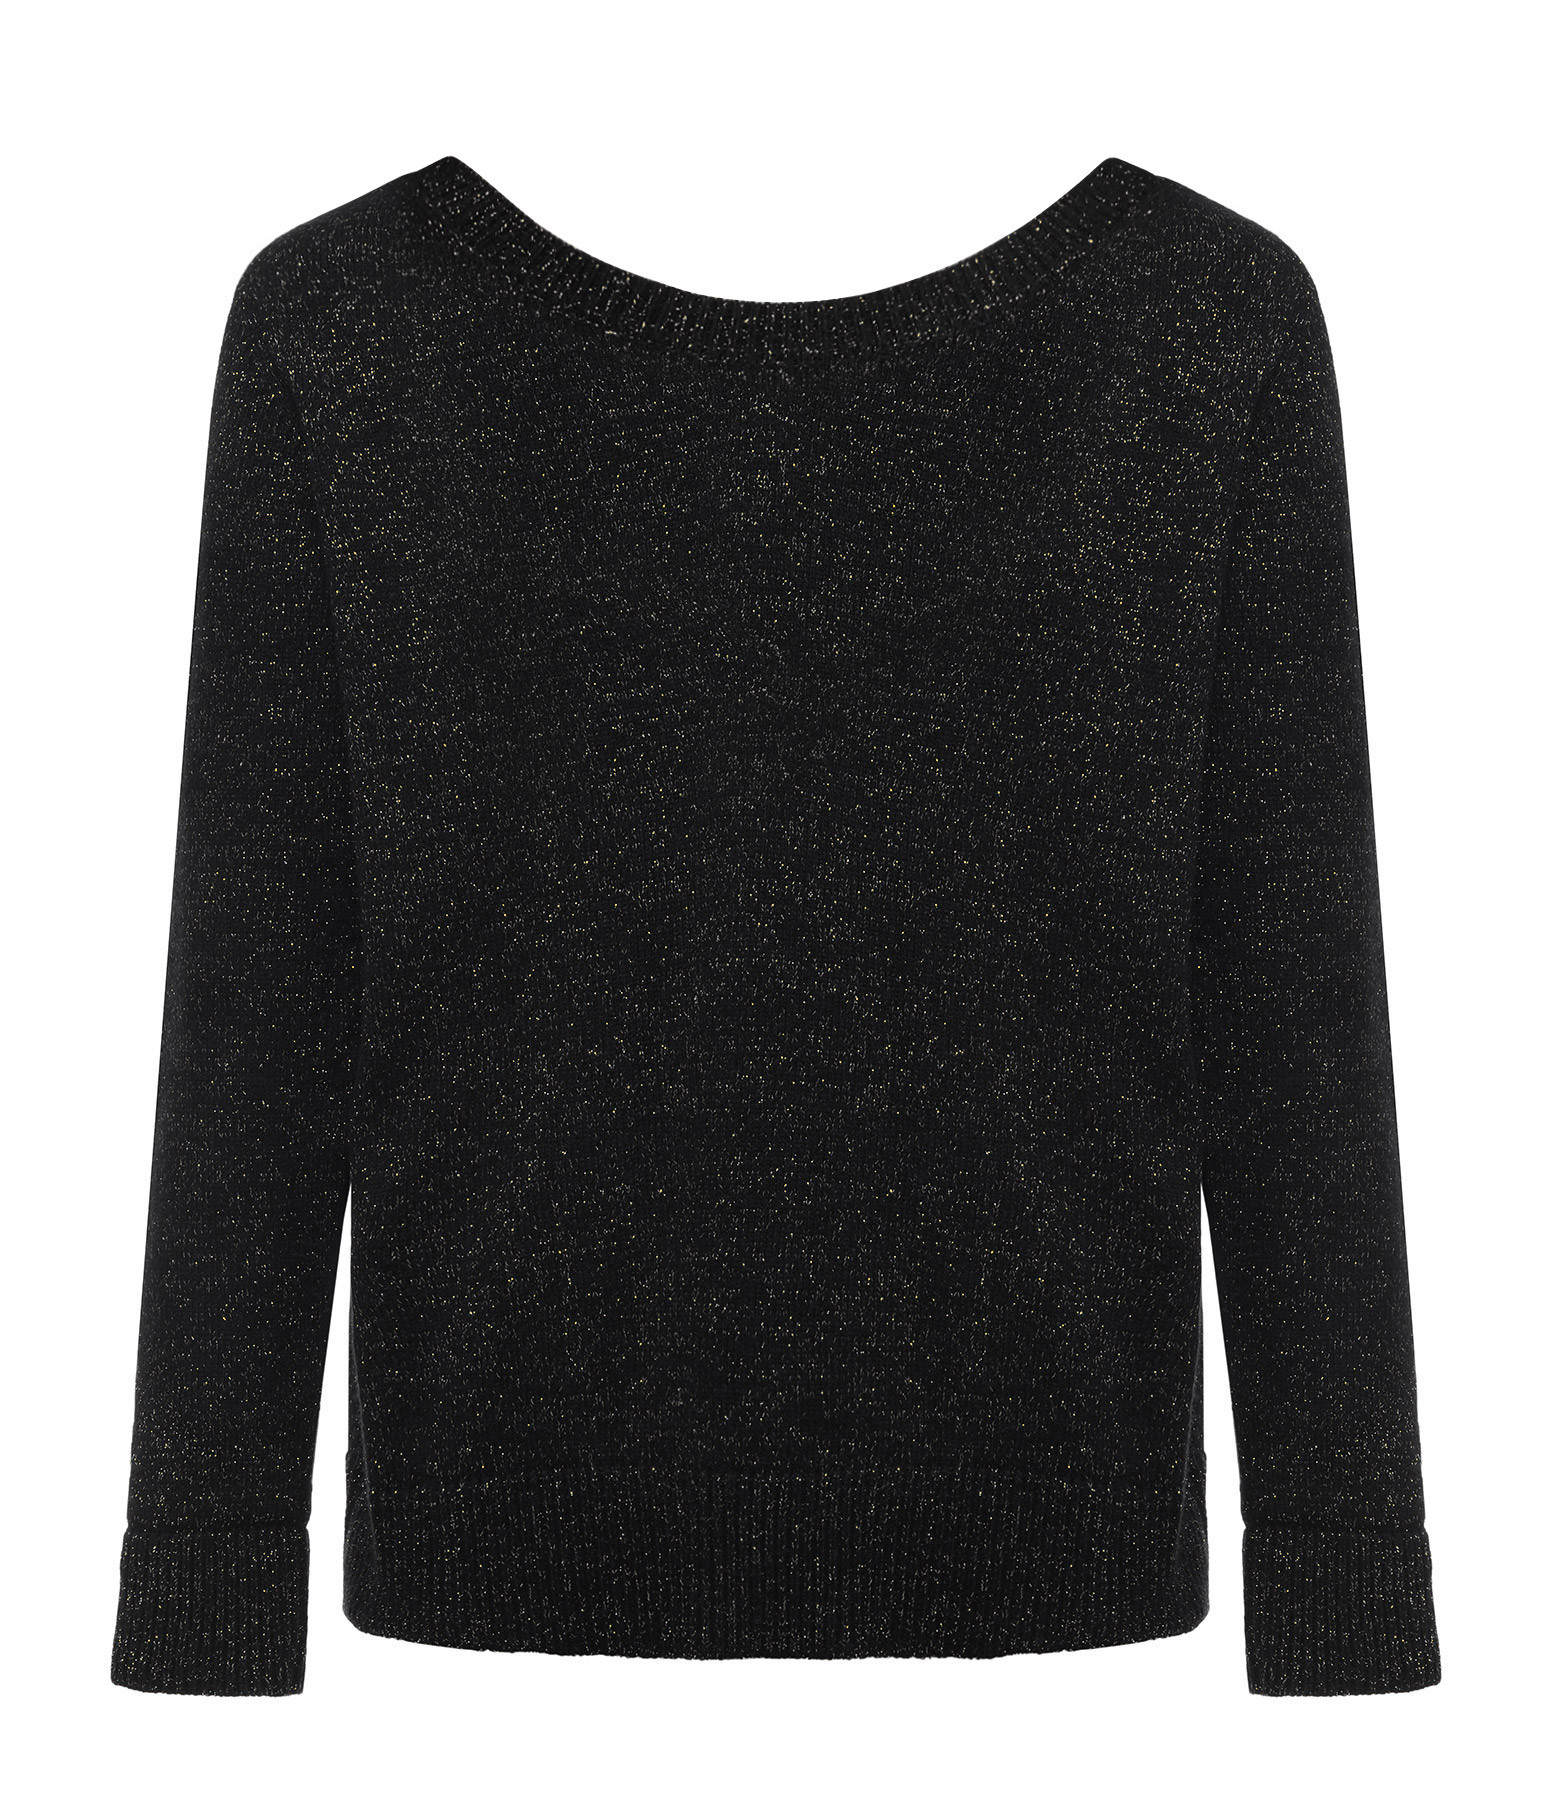 JEANNE VOULAND - Pull Enzo Maille Lurex Réversible Noir Or